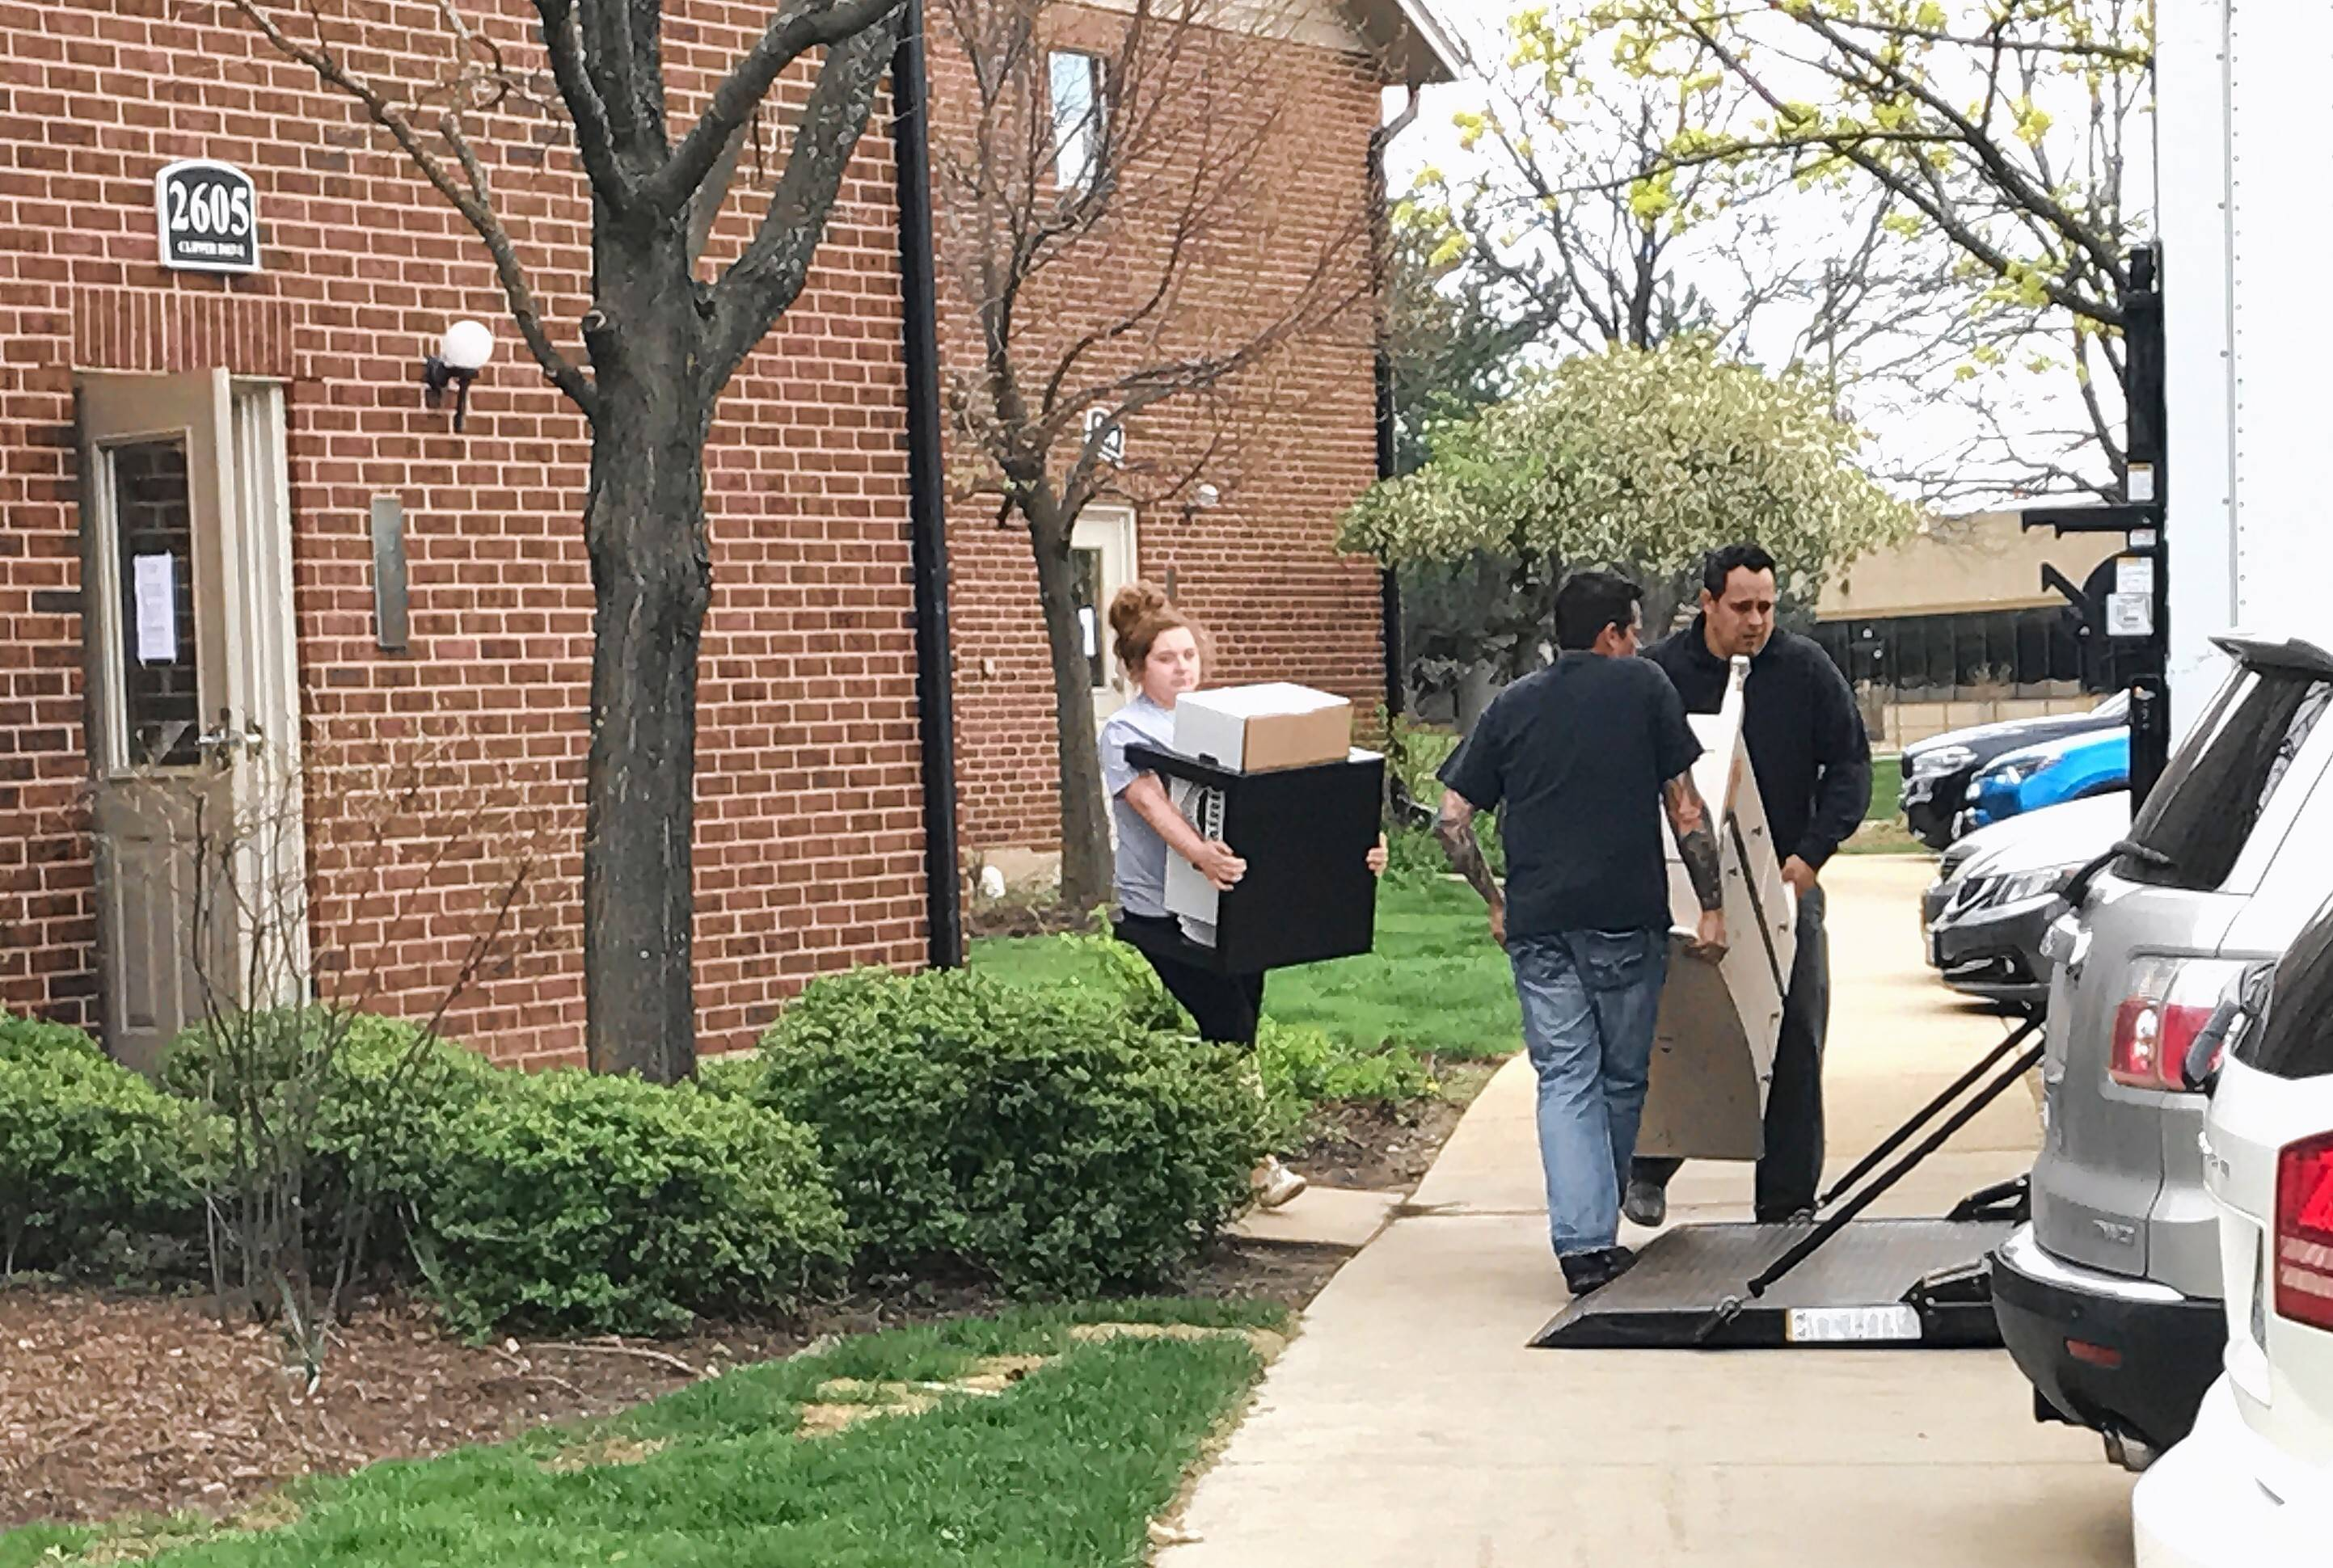 Family and friends of Tiffany Thrasher on Thursday began moving her belongings out of the Schaumburg apartment where she was murdered five days before.